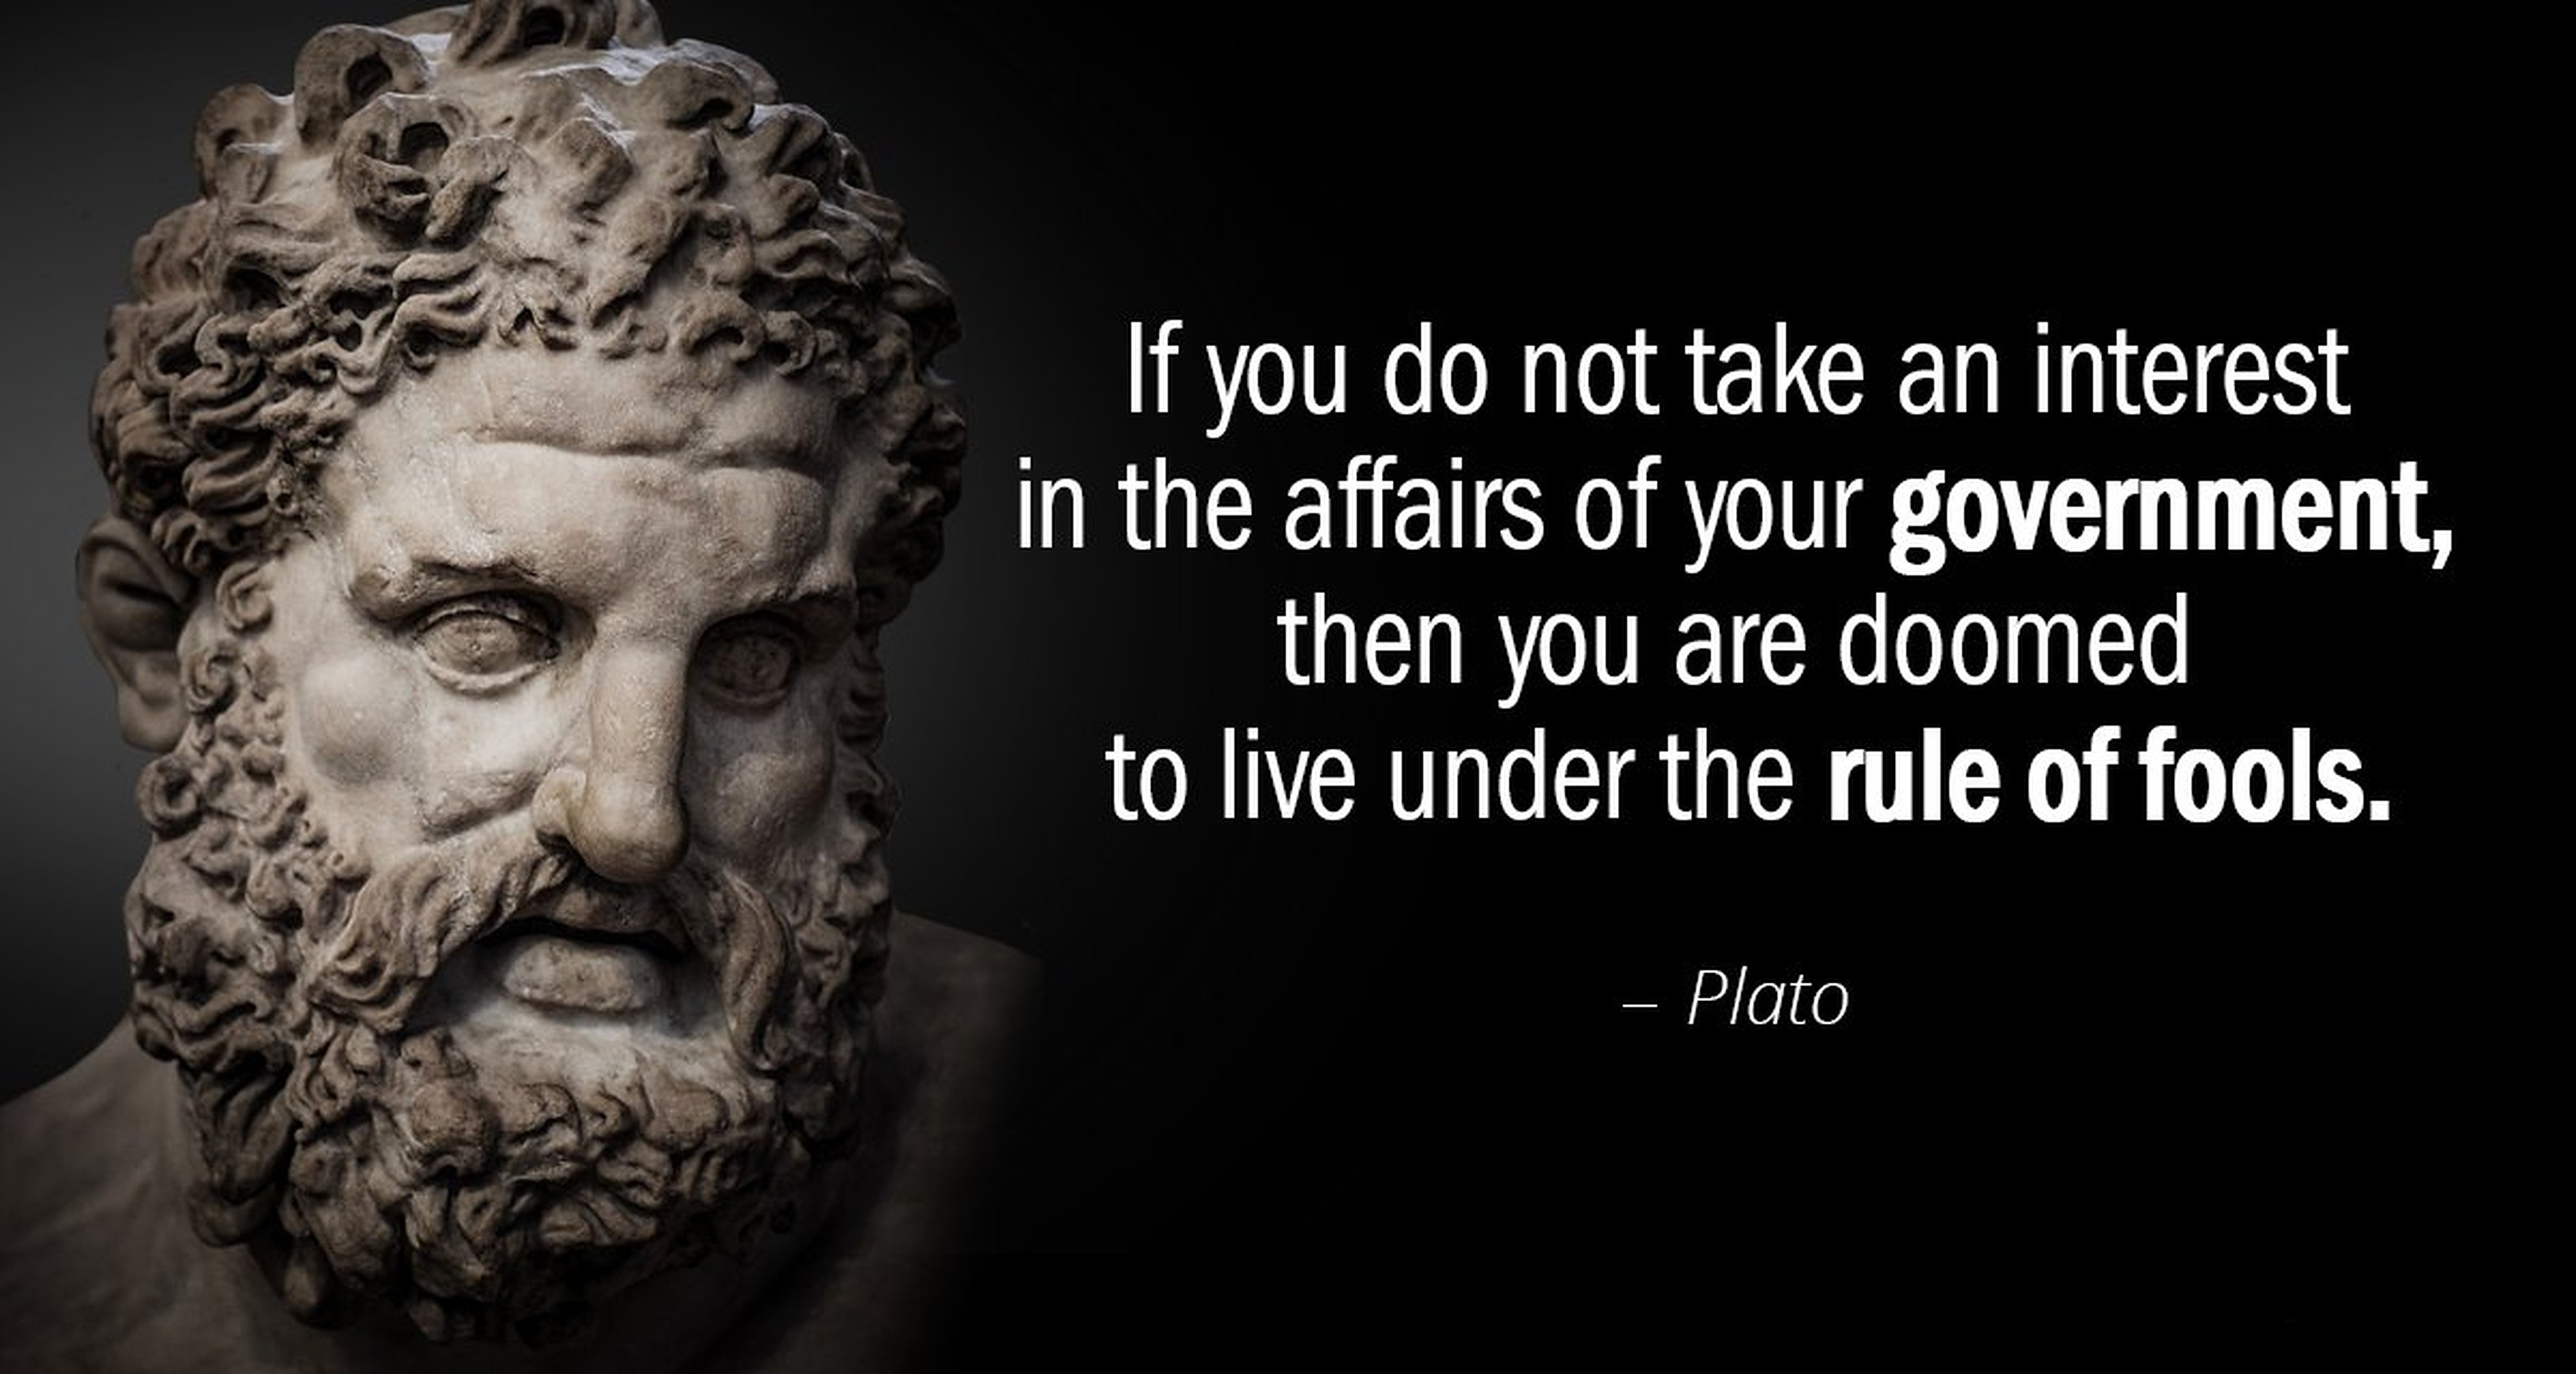 """If you do not take an interest in the affairs of your government, then you are doomed to live under the rule of fools."" ―Plato [3840×2048]"